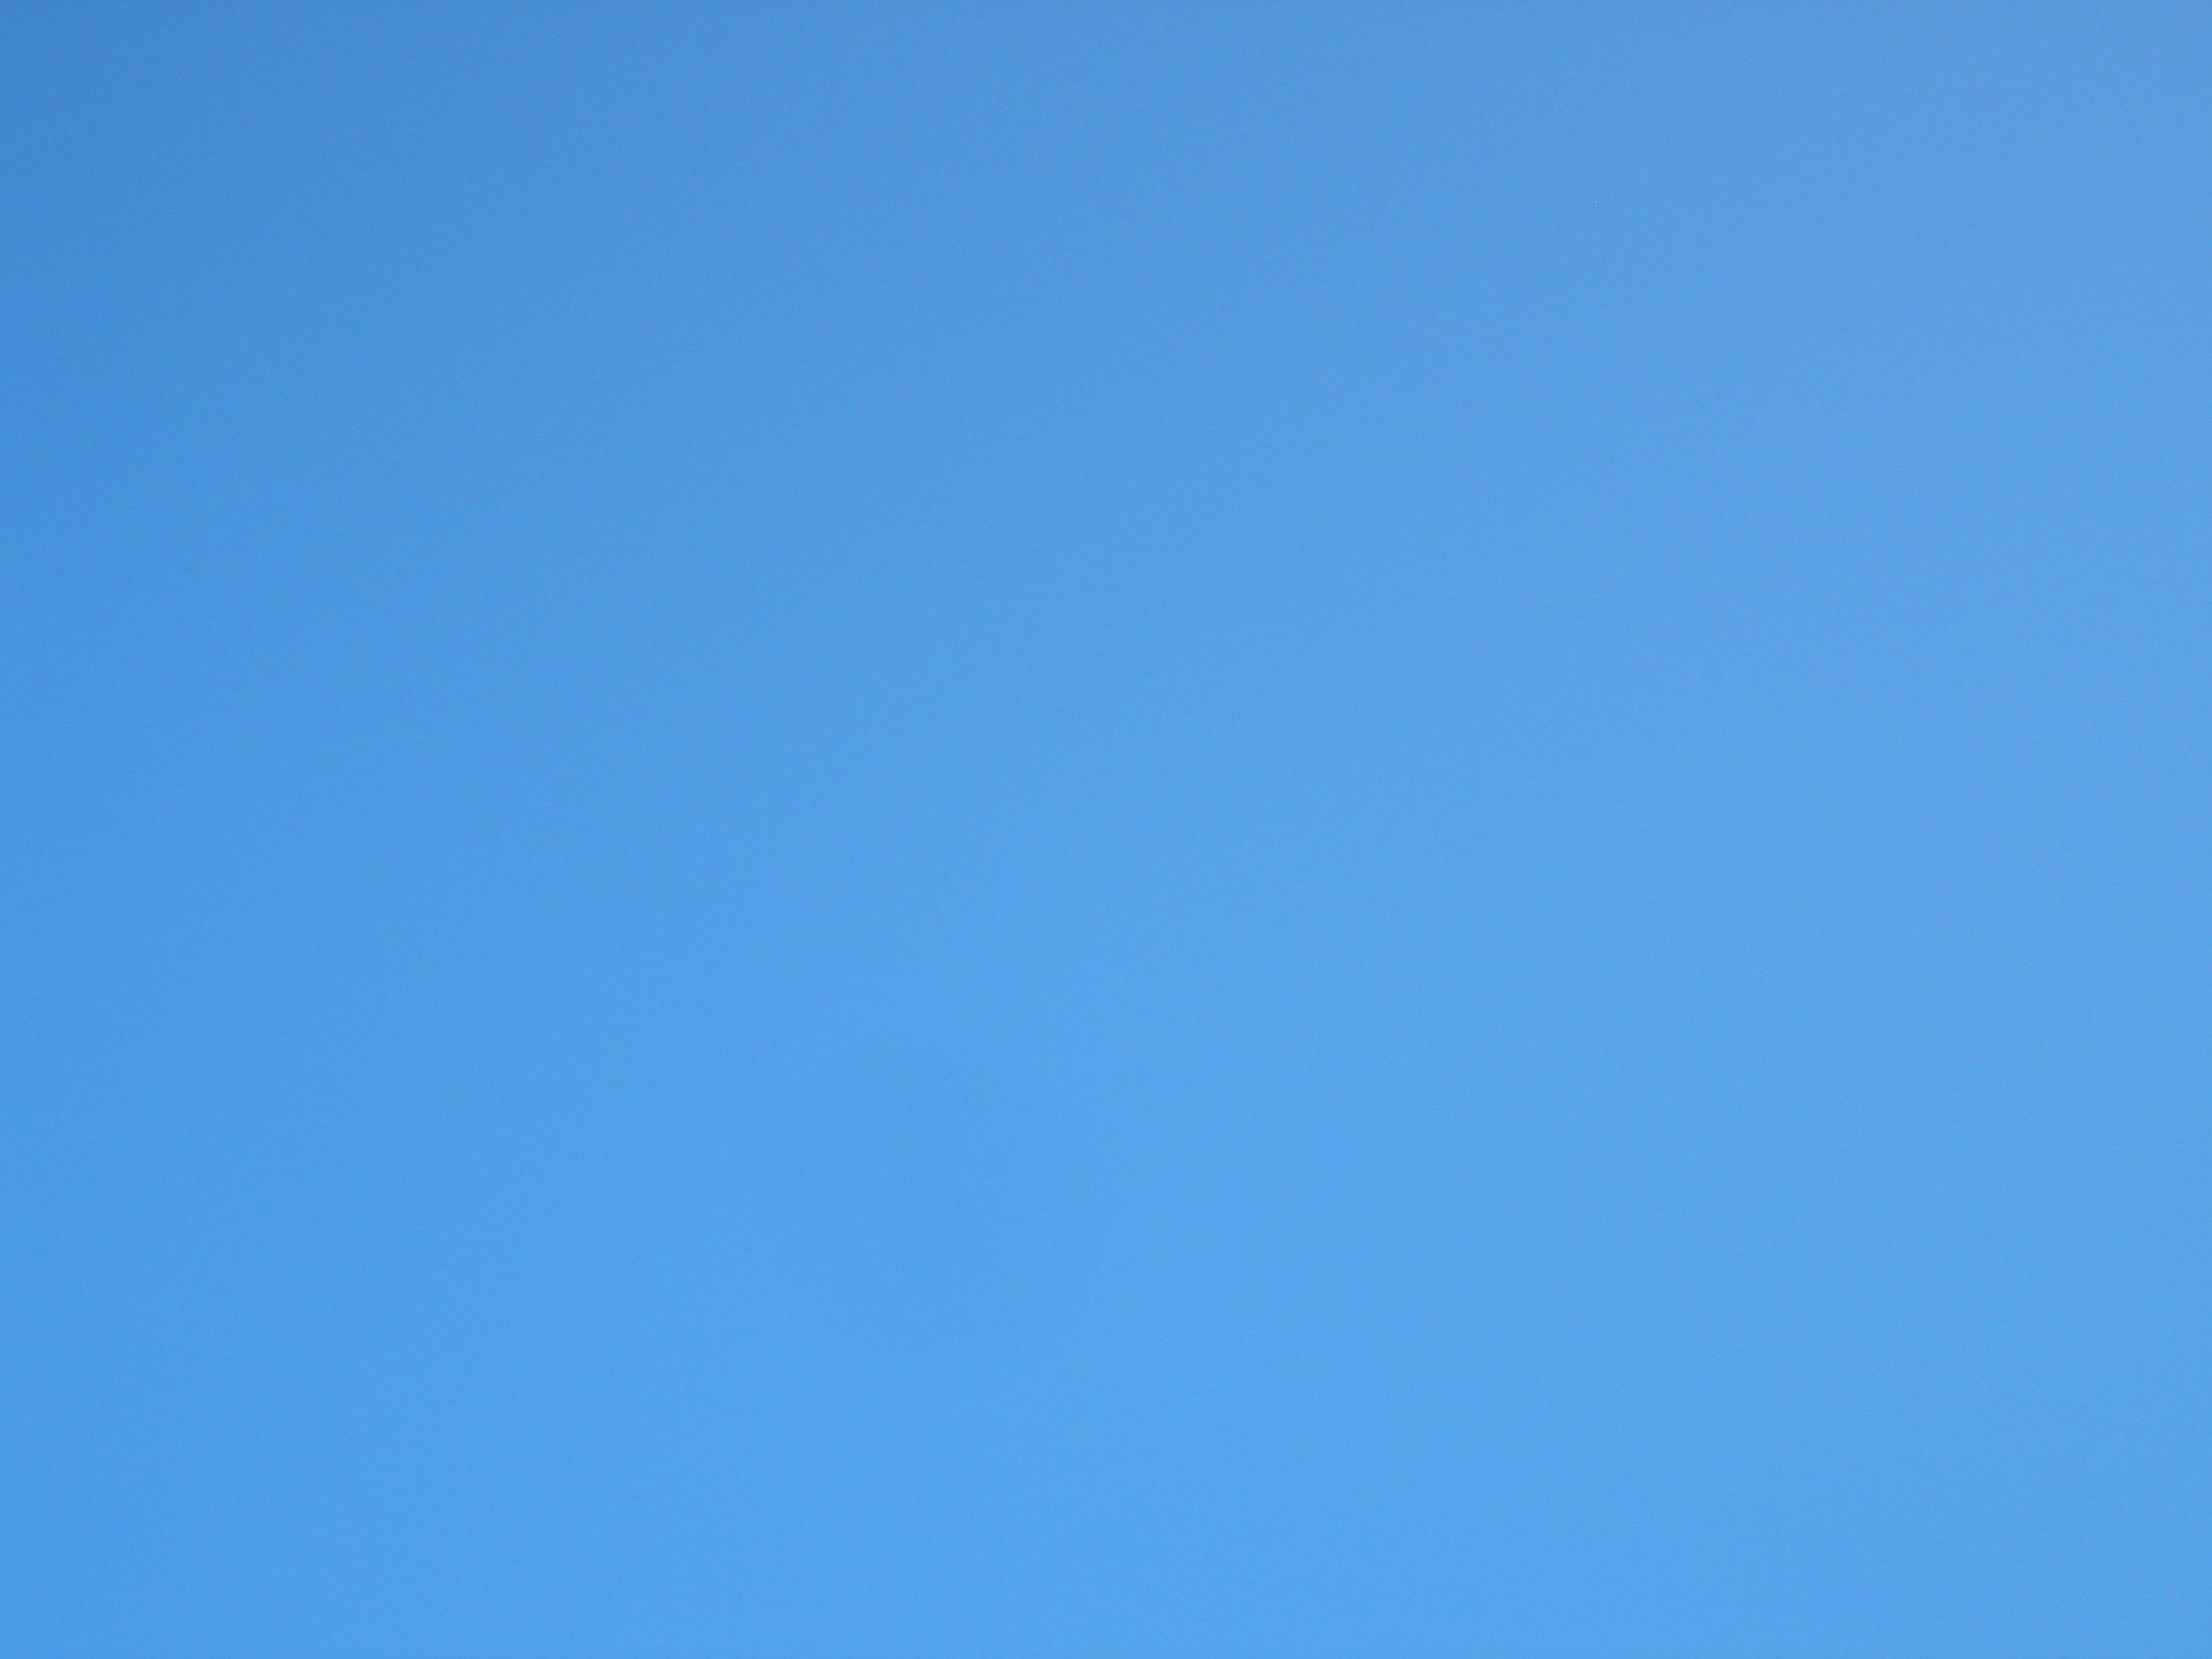 Cloudless_blue_sky.JPG